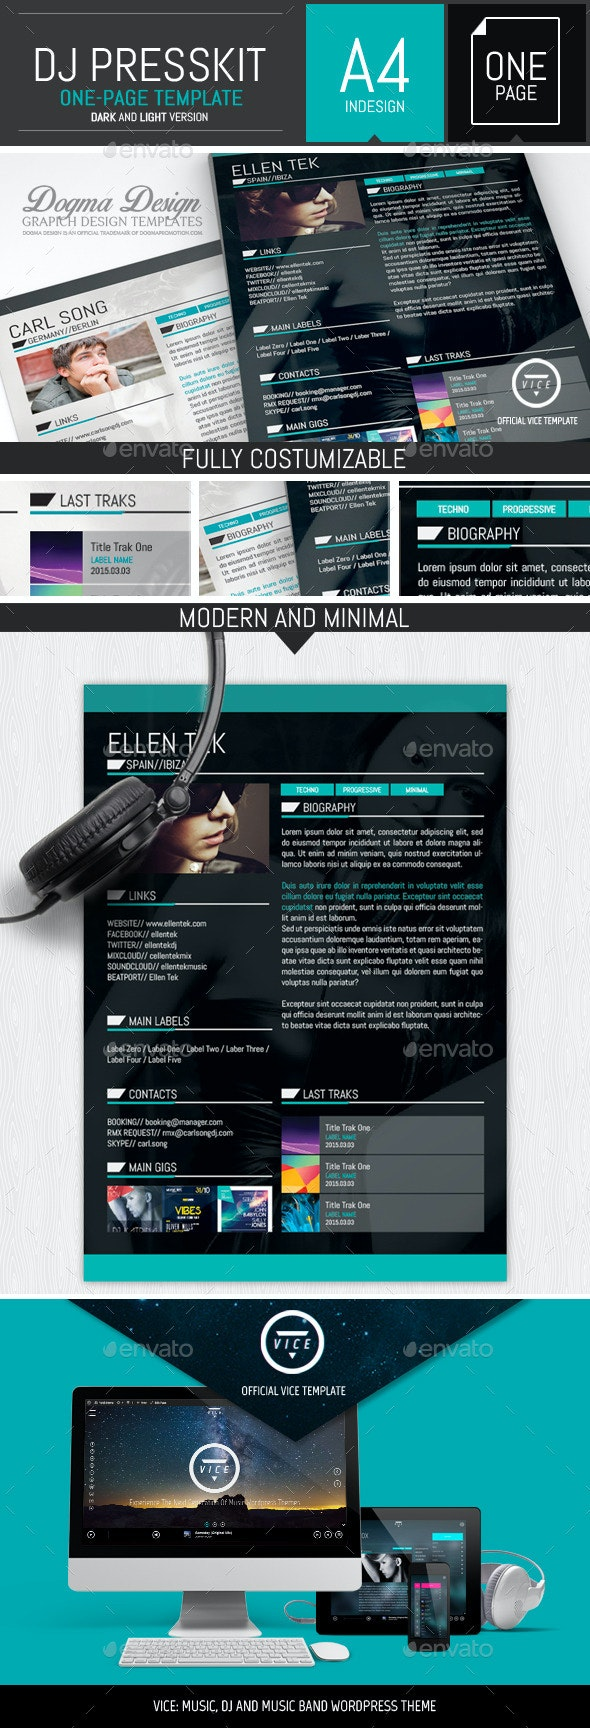 Vice: Dj / Musician OnePage Resume Indesign Template - Resumes Stationery